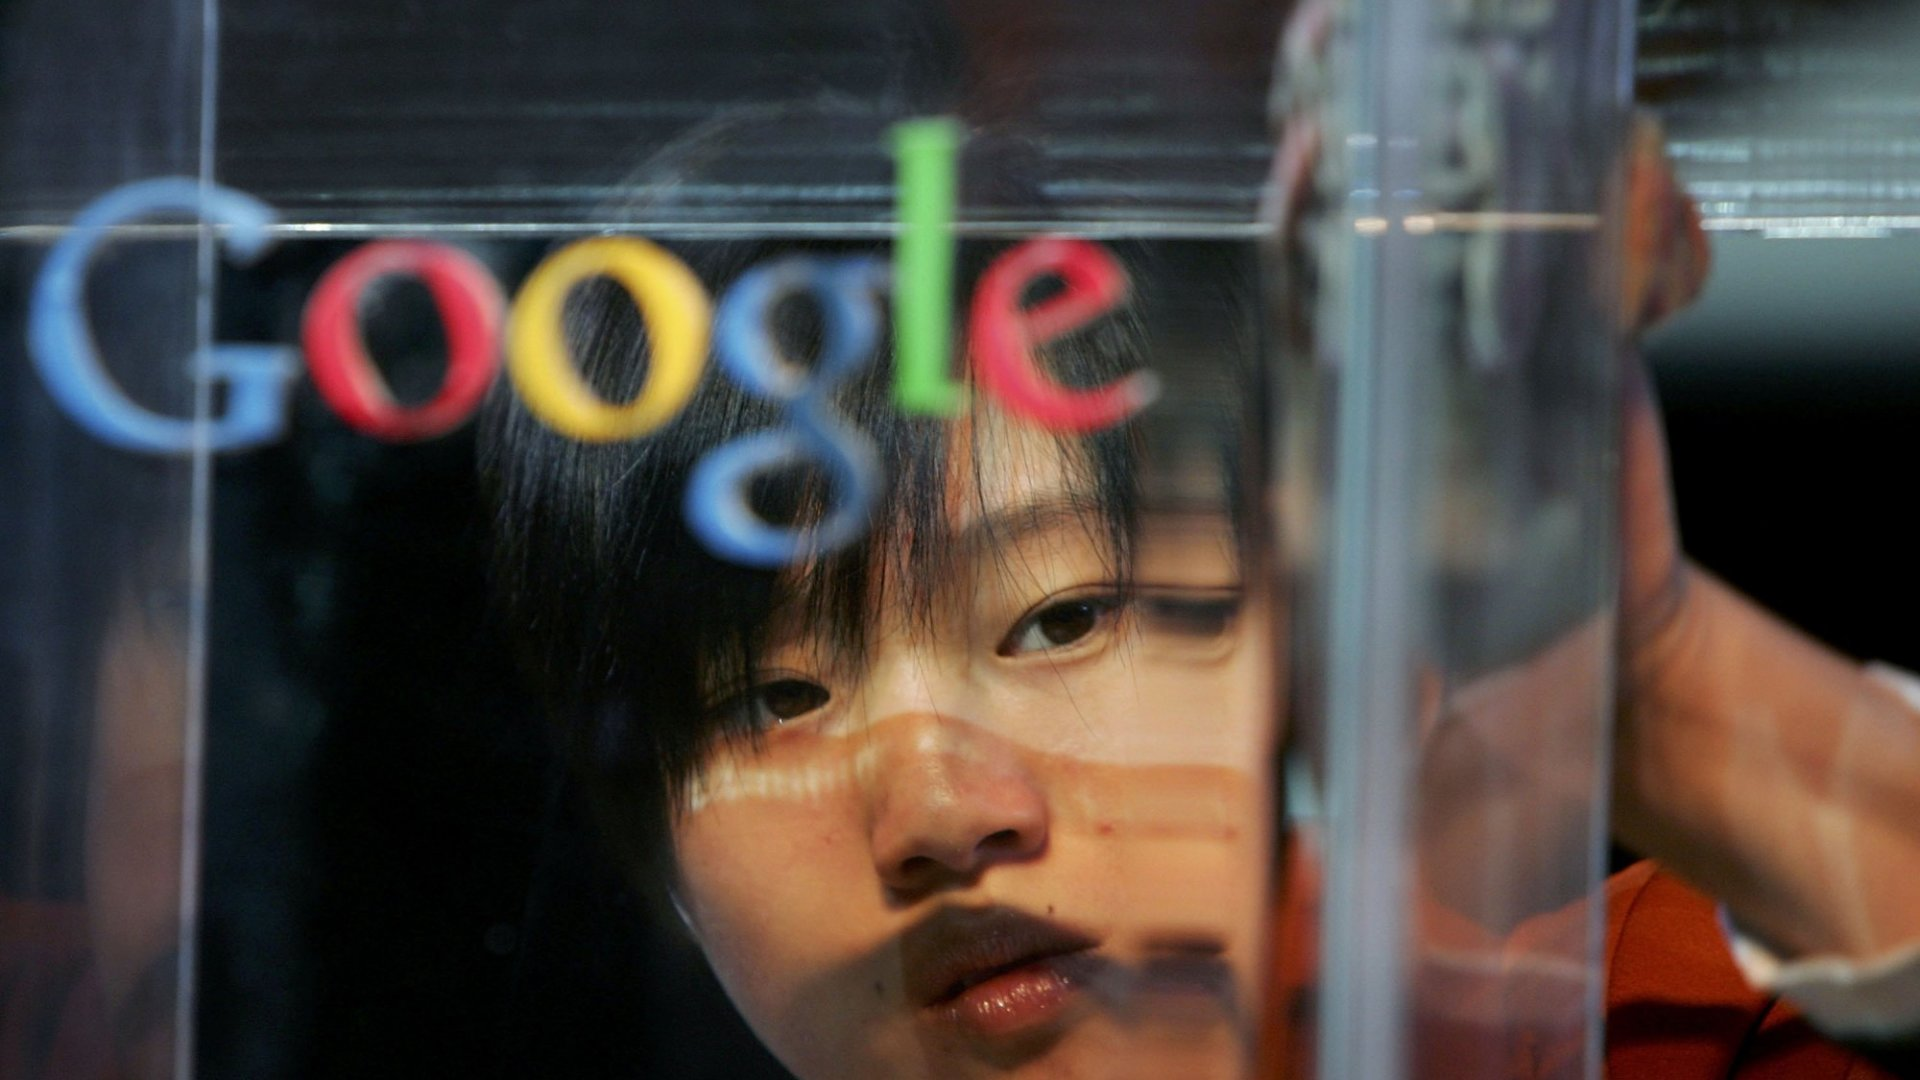 How Will Google Shopping Compete With Amazon? With Sci-Fi Warehouses Run With Almost No Humans